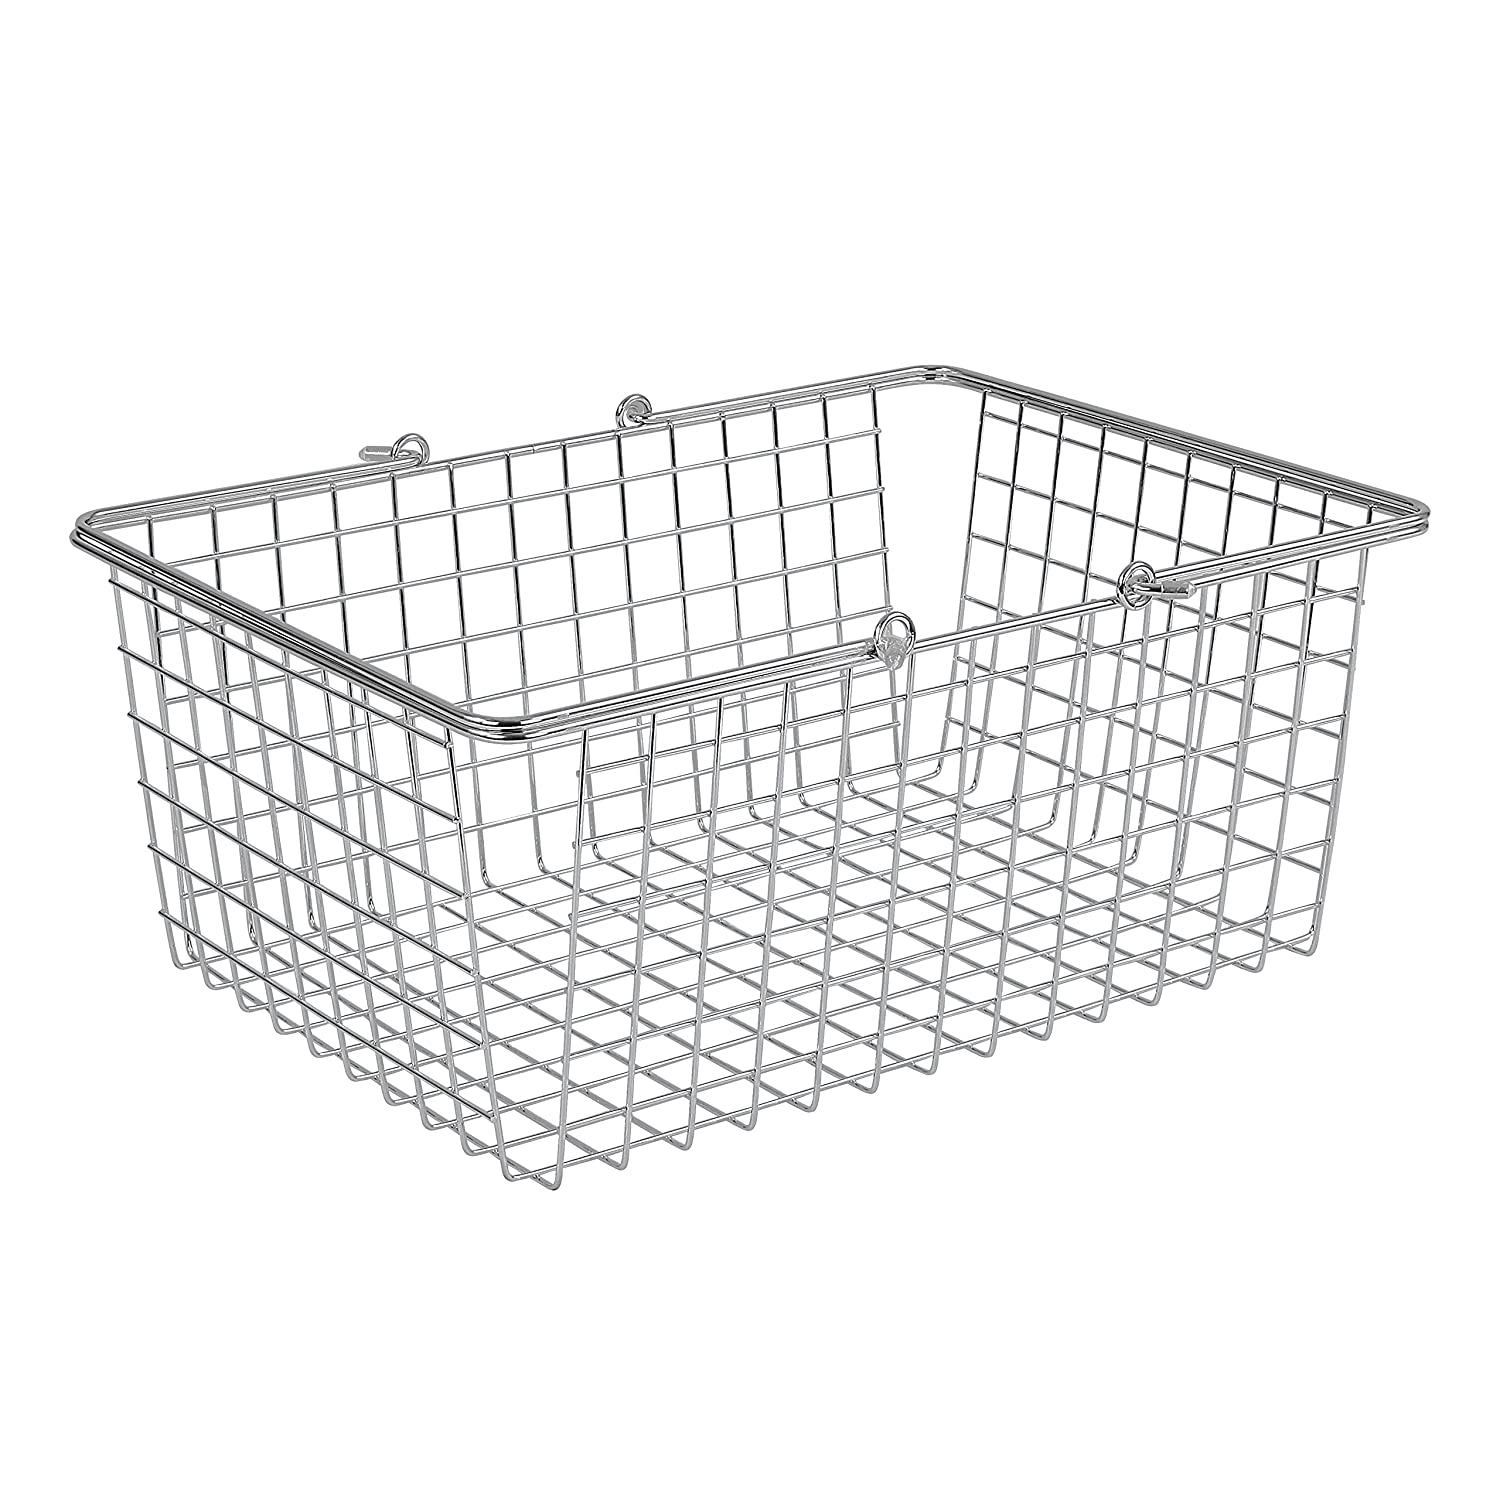 Spectrum Diversified Wire Storage Basket, Large, Chrome 43470